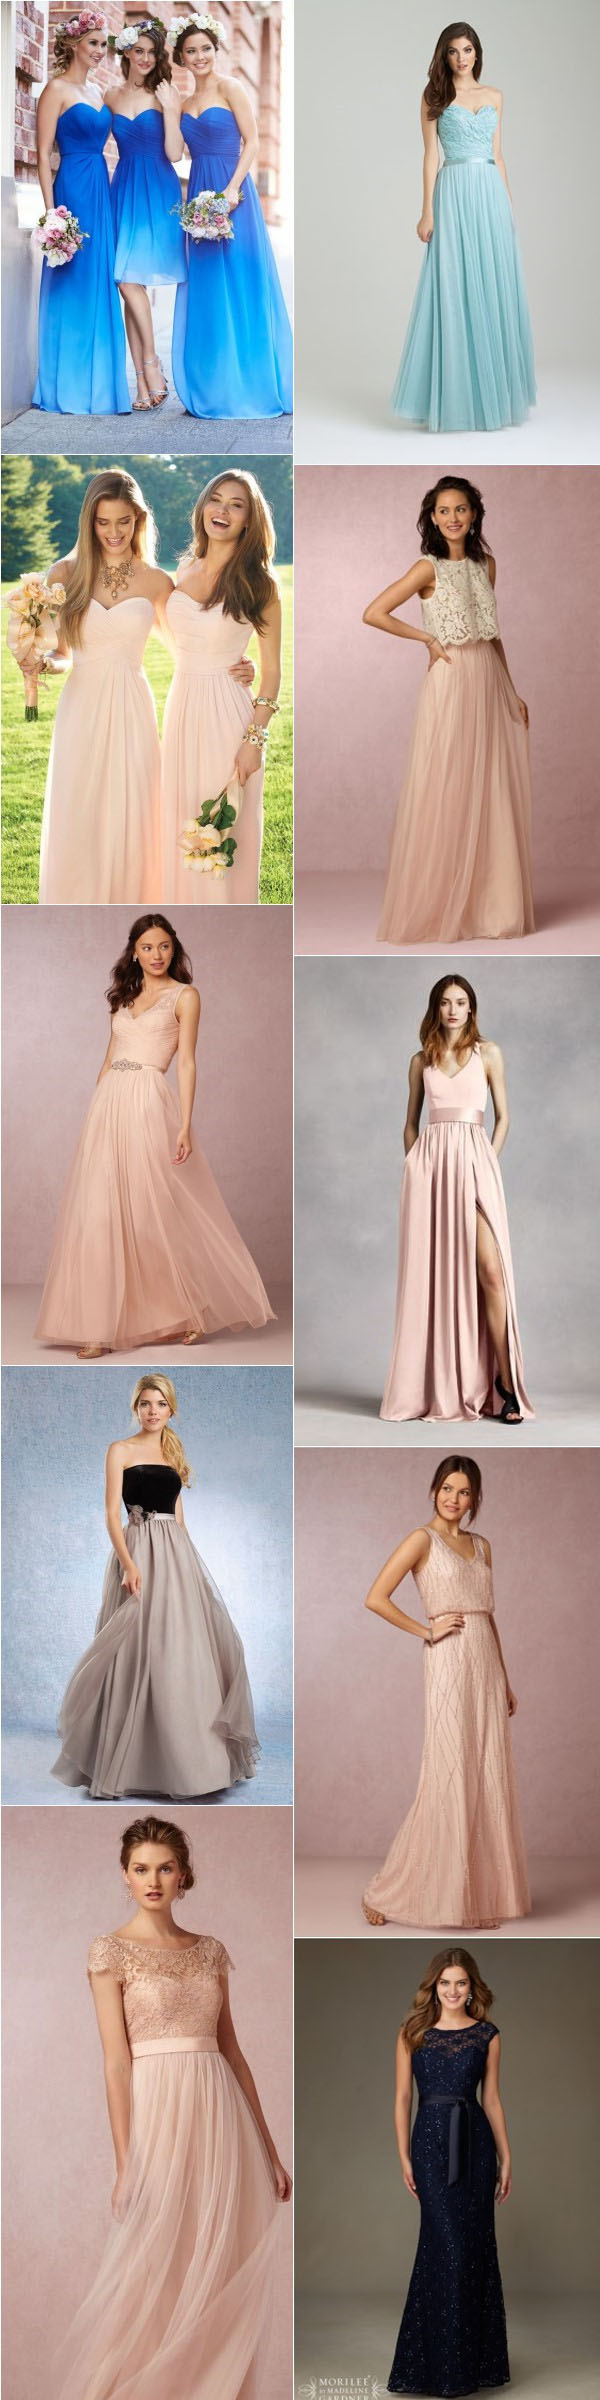 Wedding Ideas-Top 10 Romantic Floor Length Bridesmaid Dresses